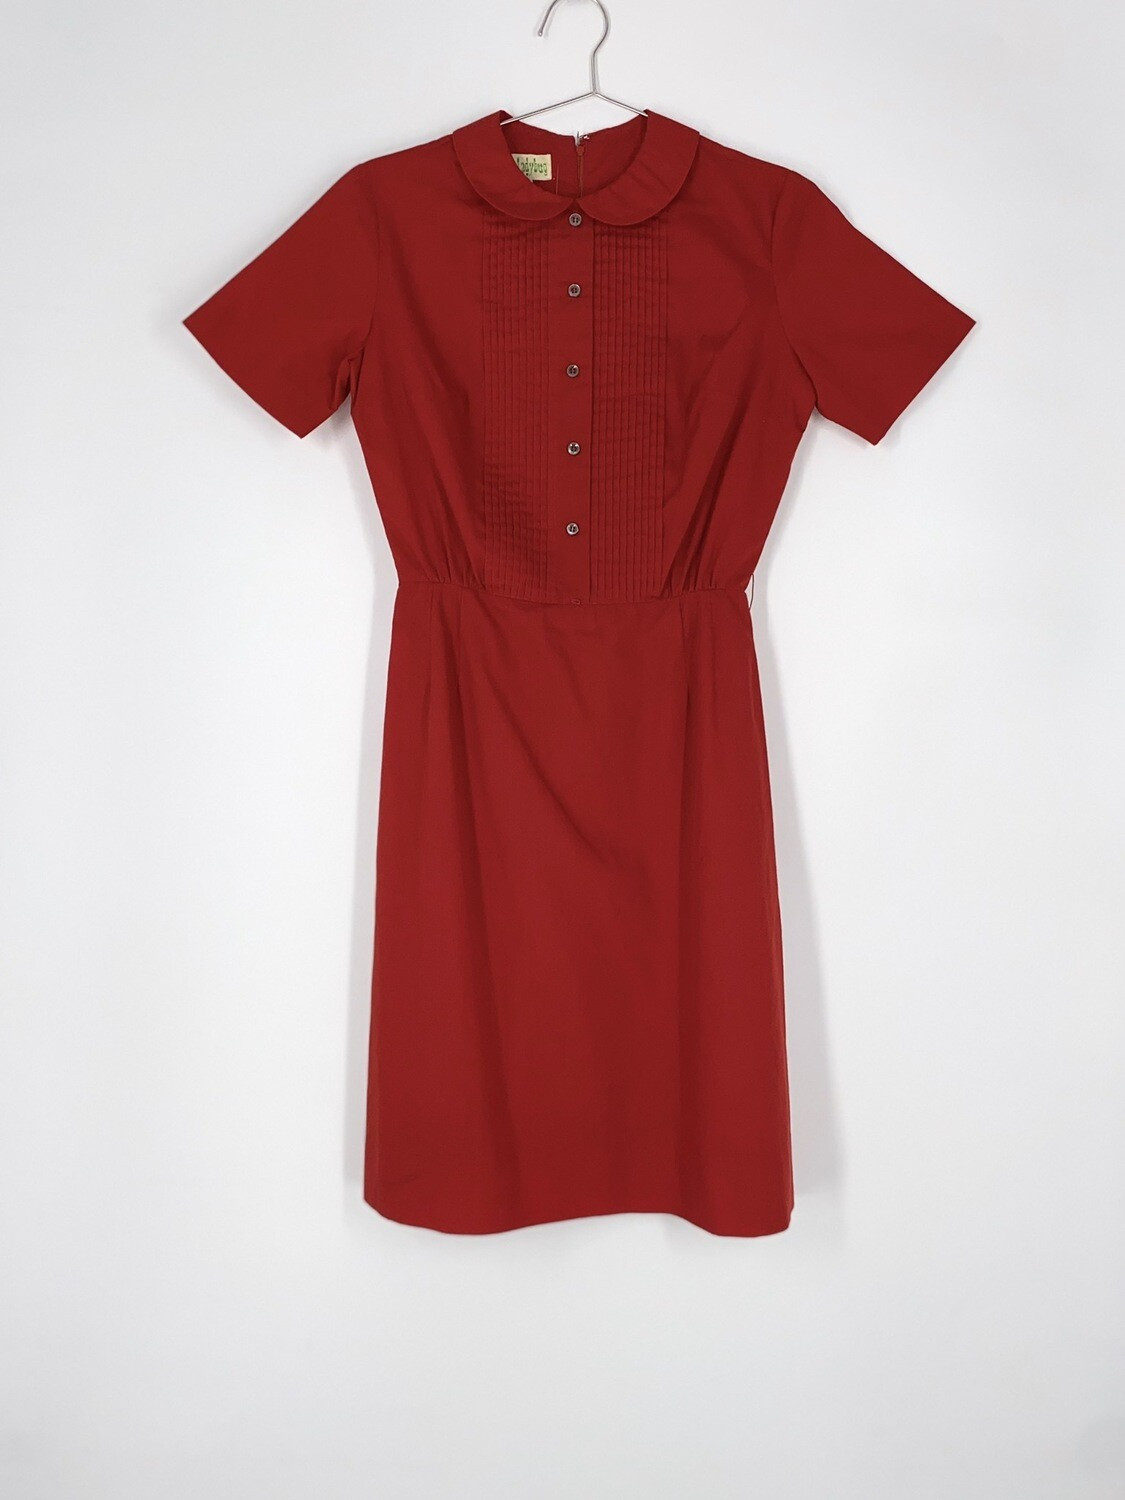 Red Collared Dress Size L